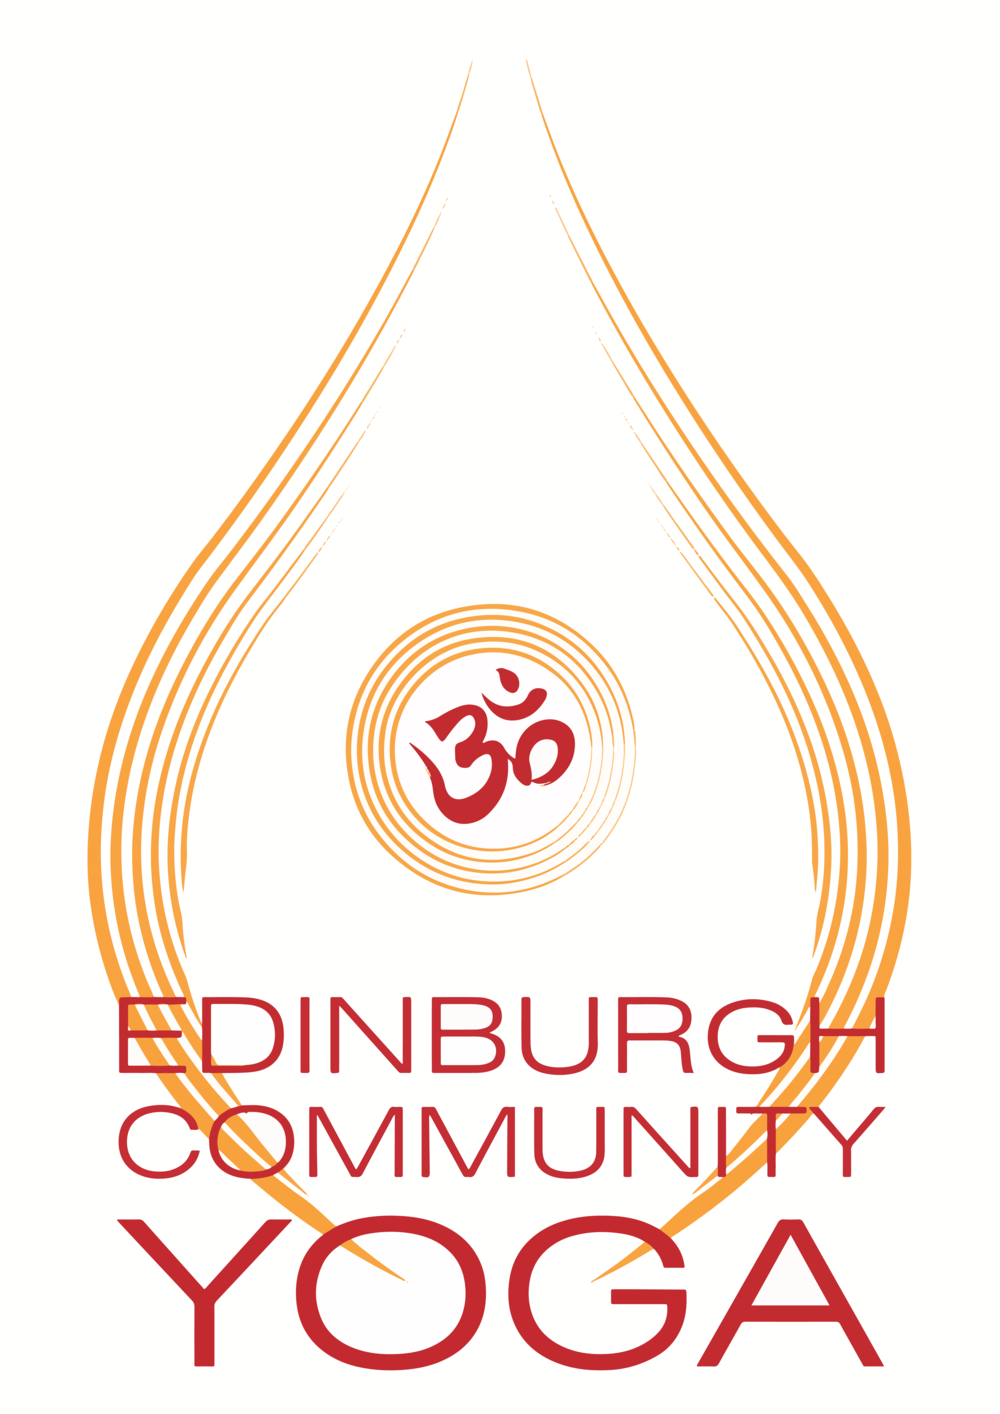 edinburgh community yoga